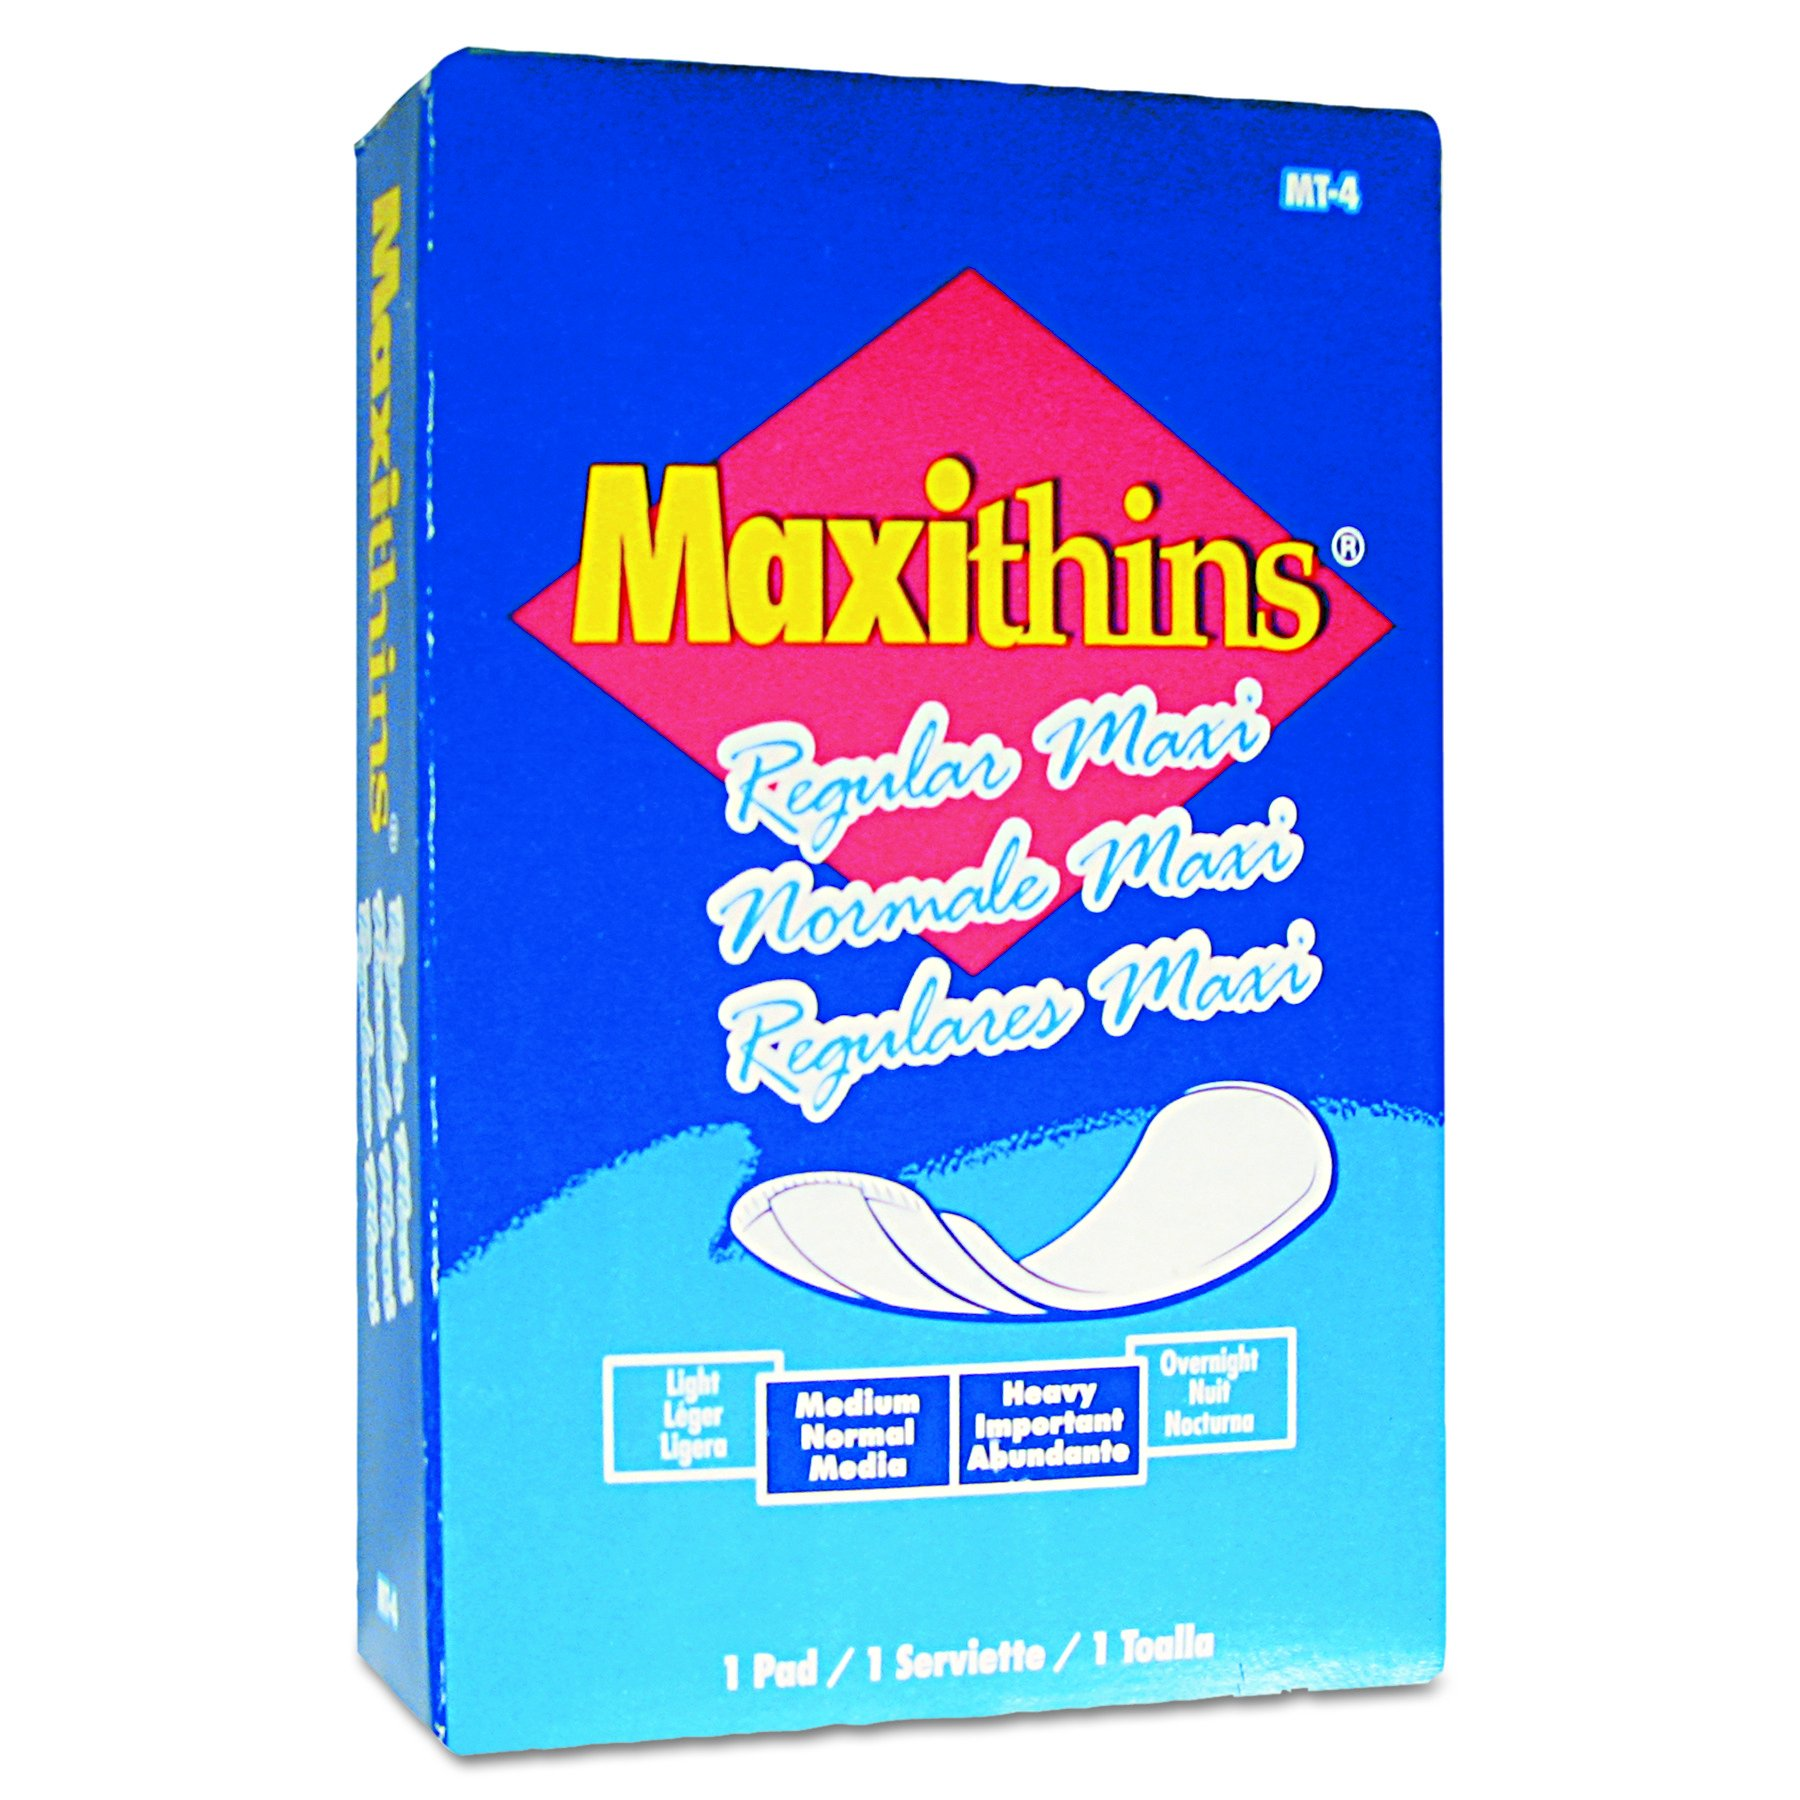 HOSPECO MT4FS Maxithins Vended Sanitary Napkins (Case of 100)